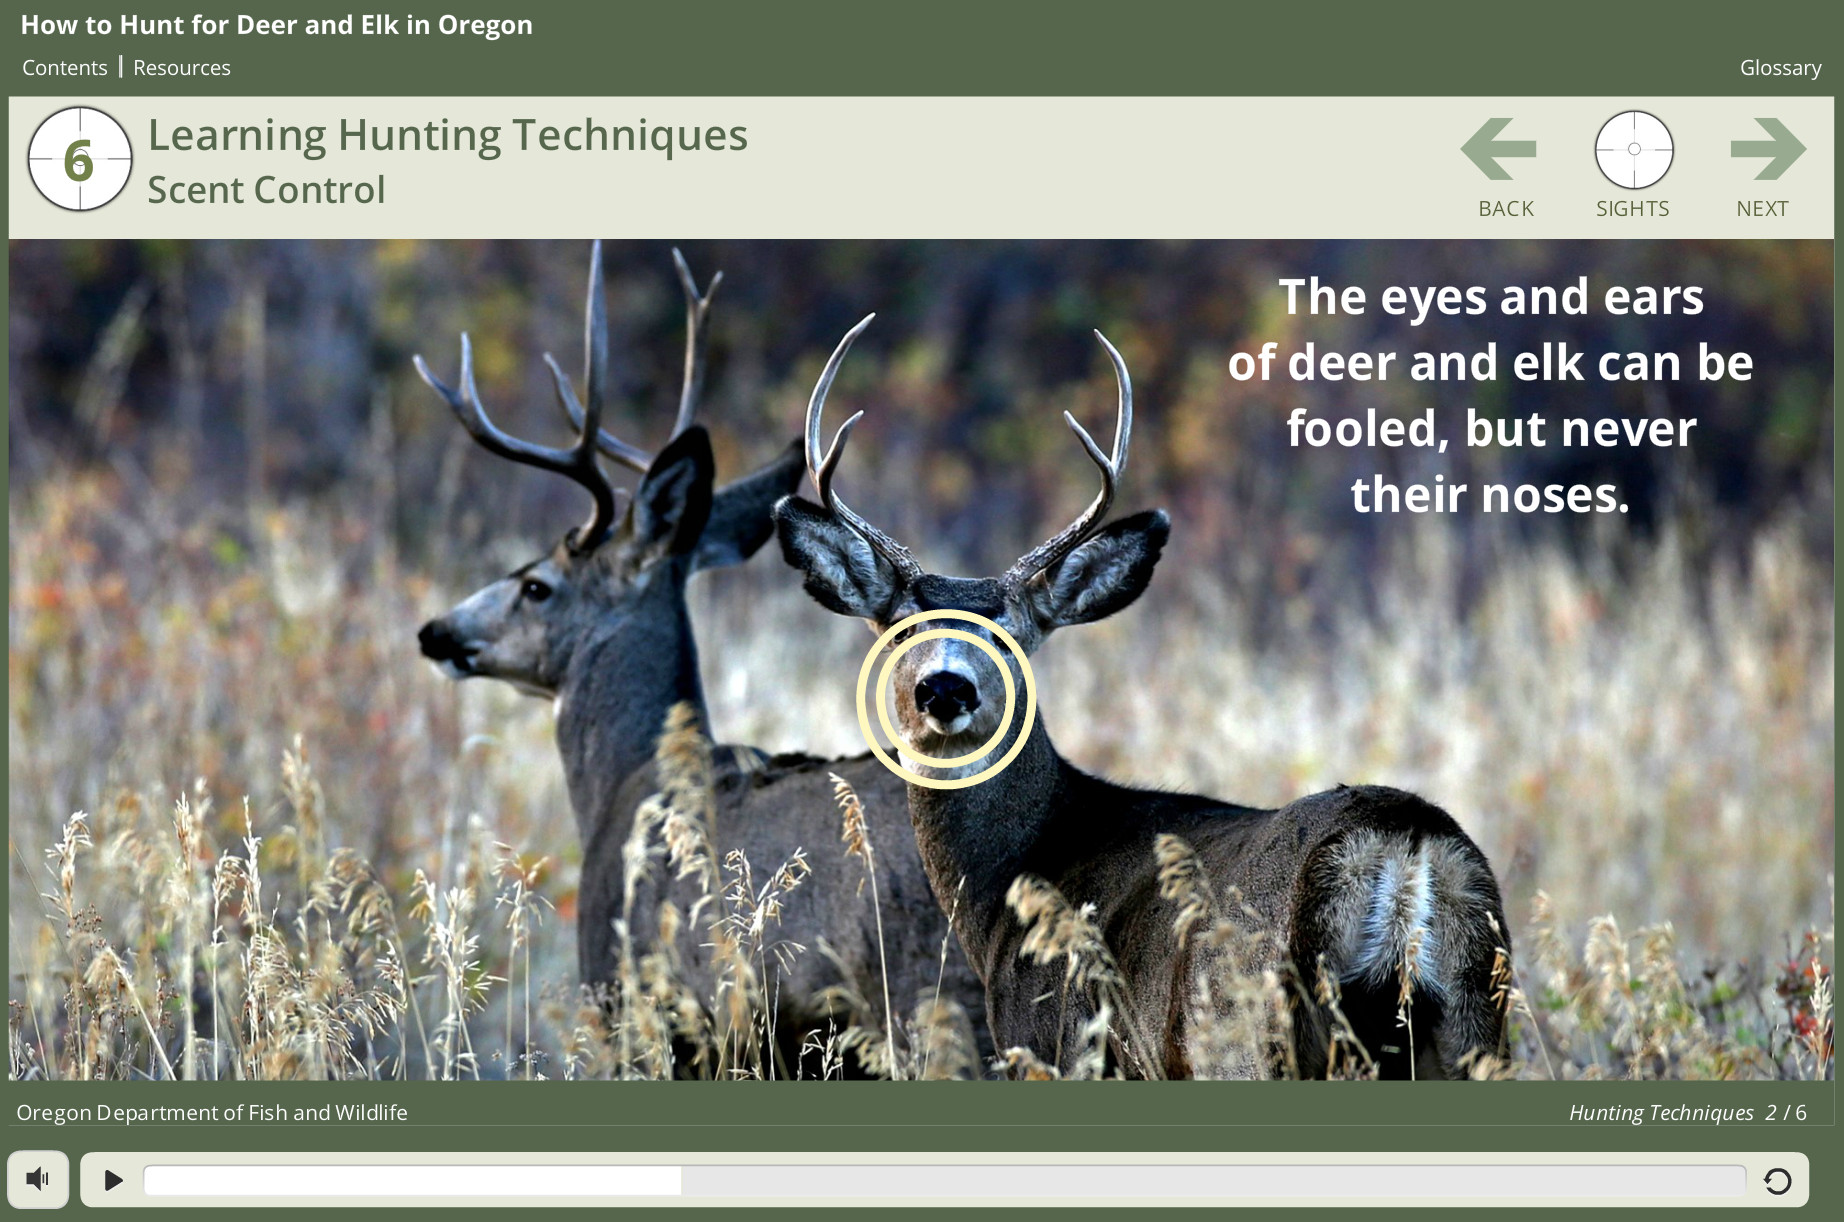 Oregon Department Of Environmental Quality Collection oregon Goes Online to Find assist New Deer and Elk Hunters